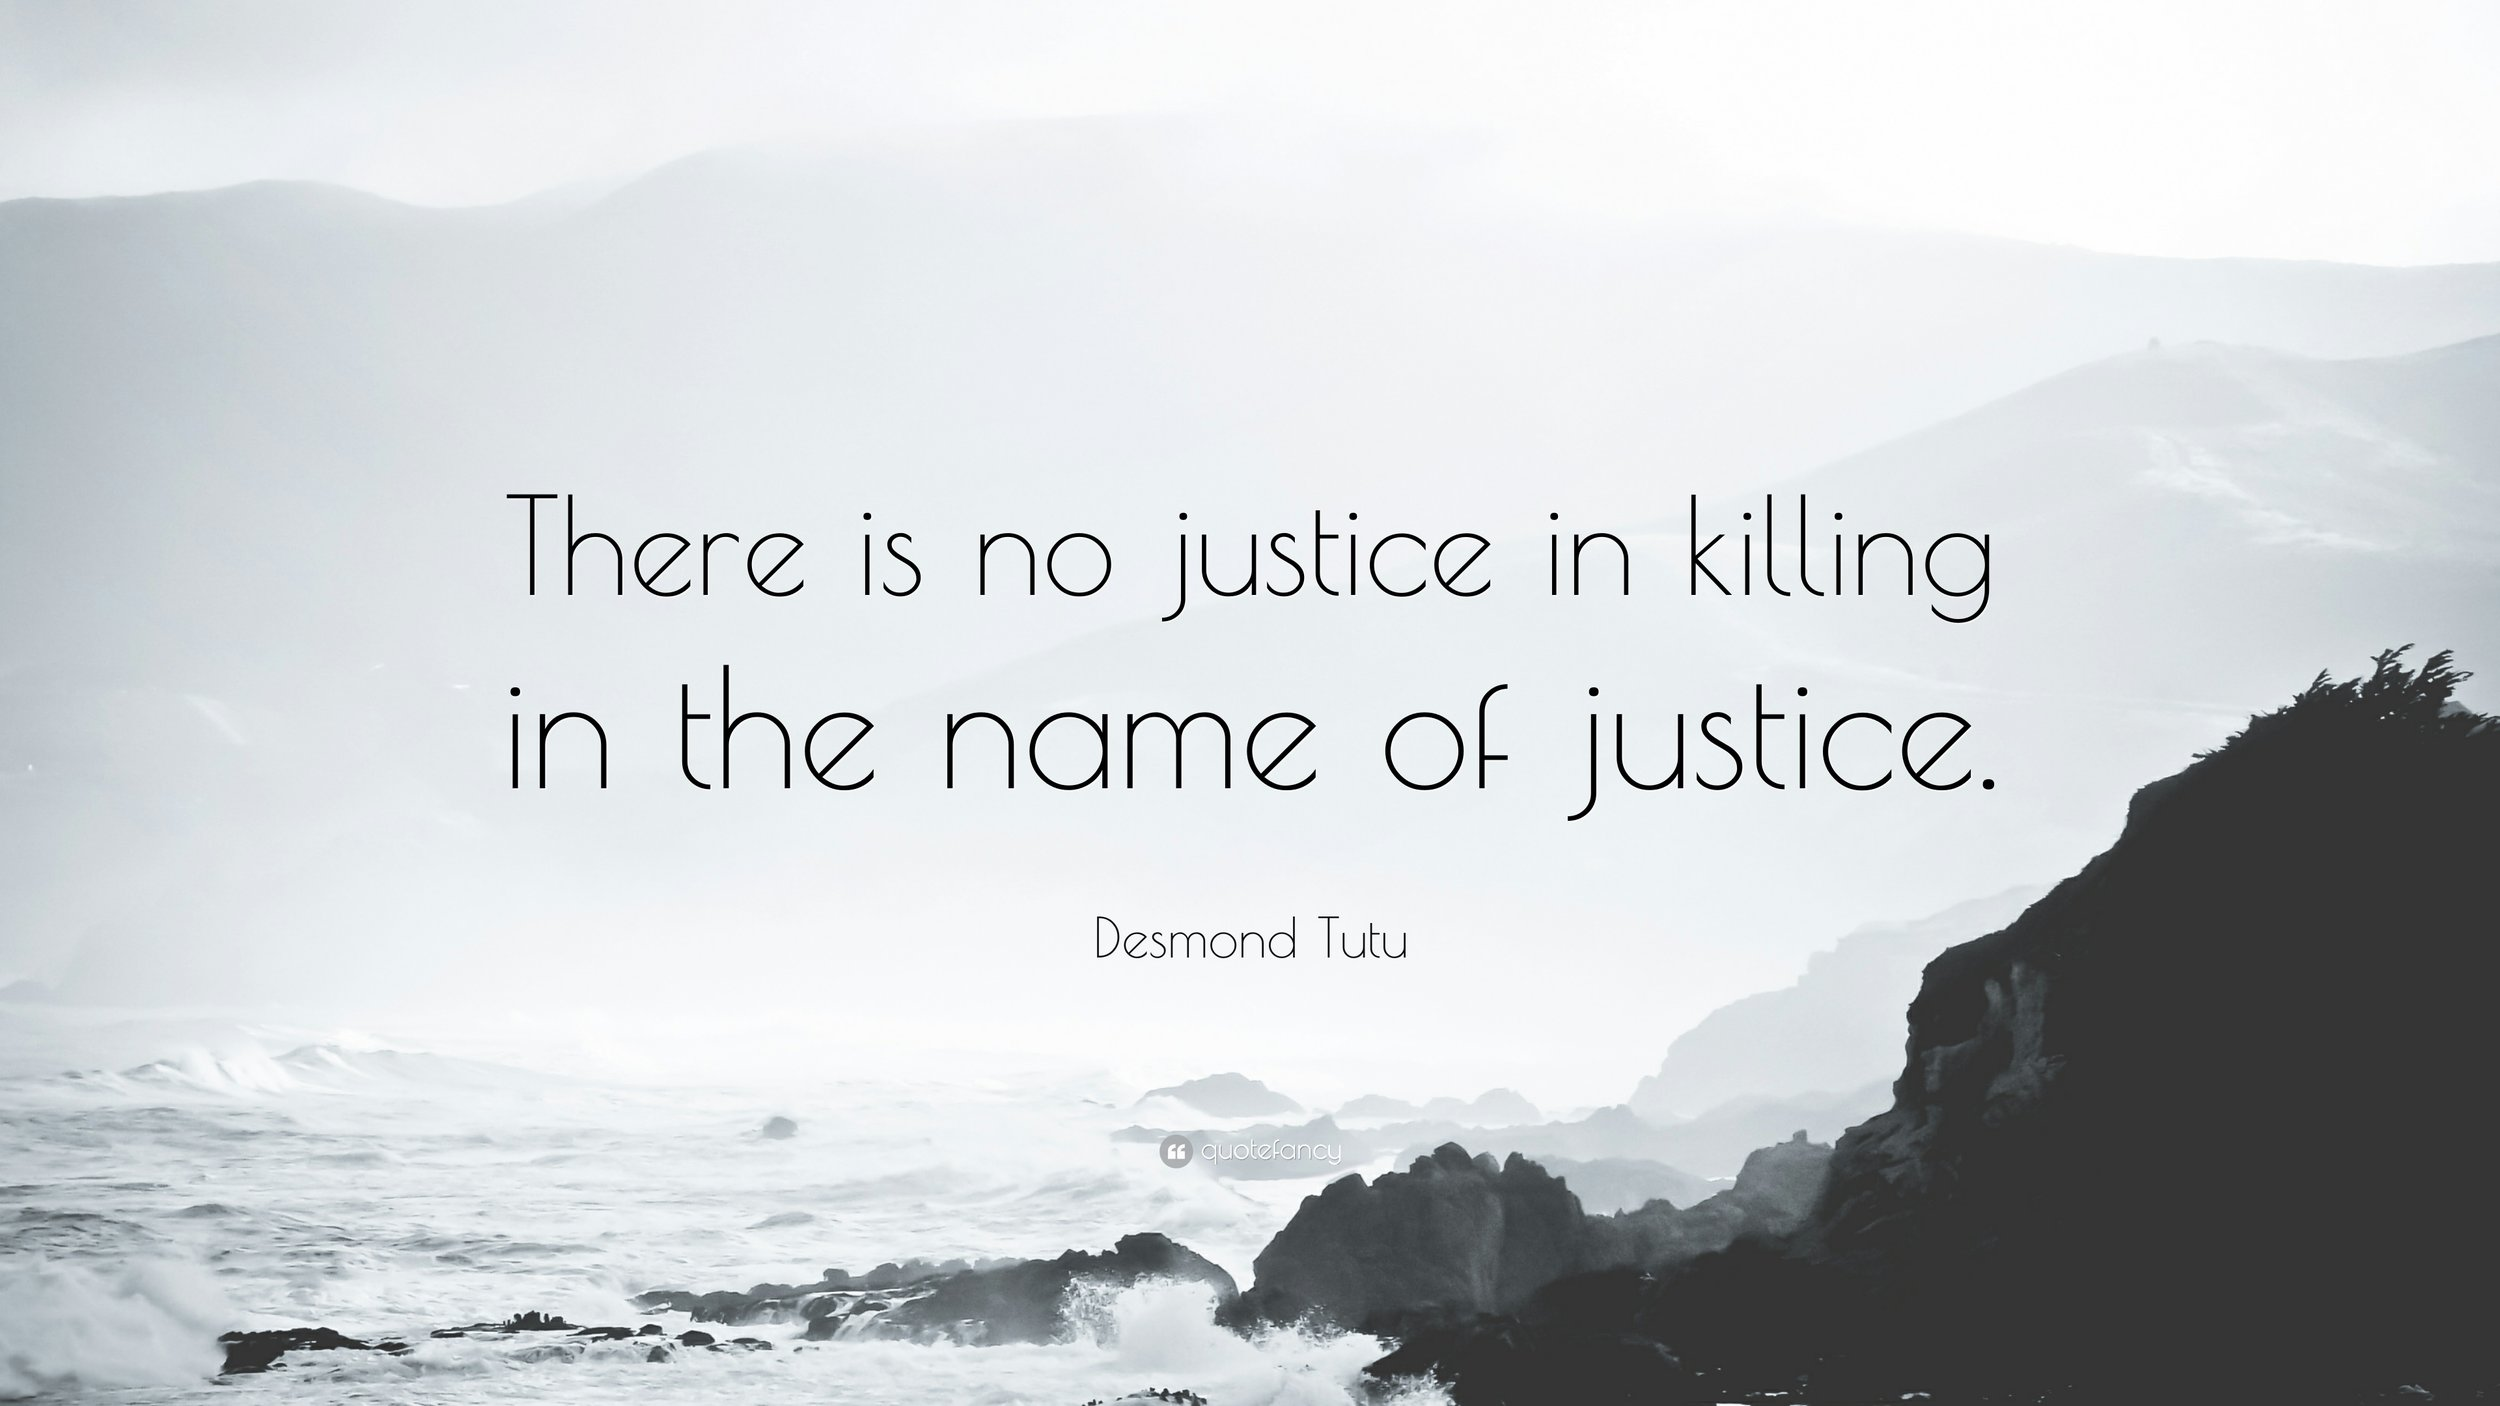 59124-Desmond-Tutu-Quote-There-is-no-justice-in-killing-in-the-name-of.jpg